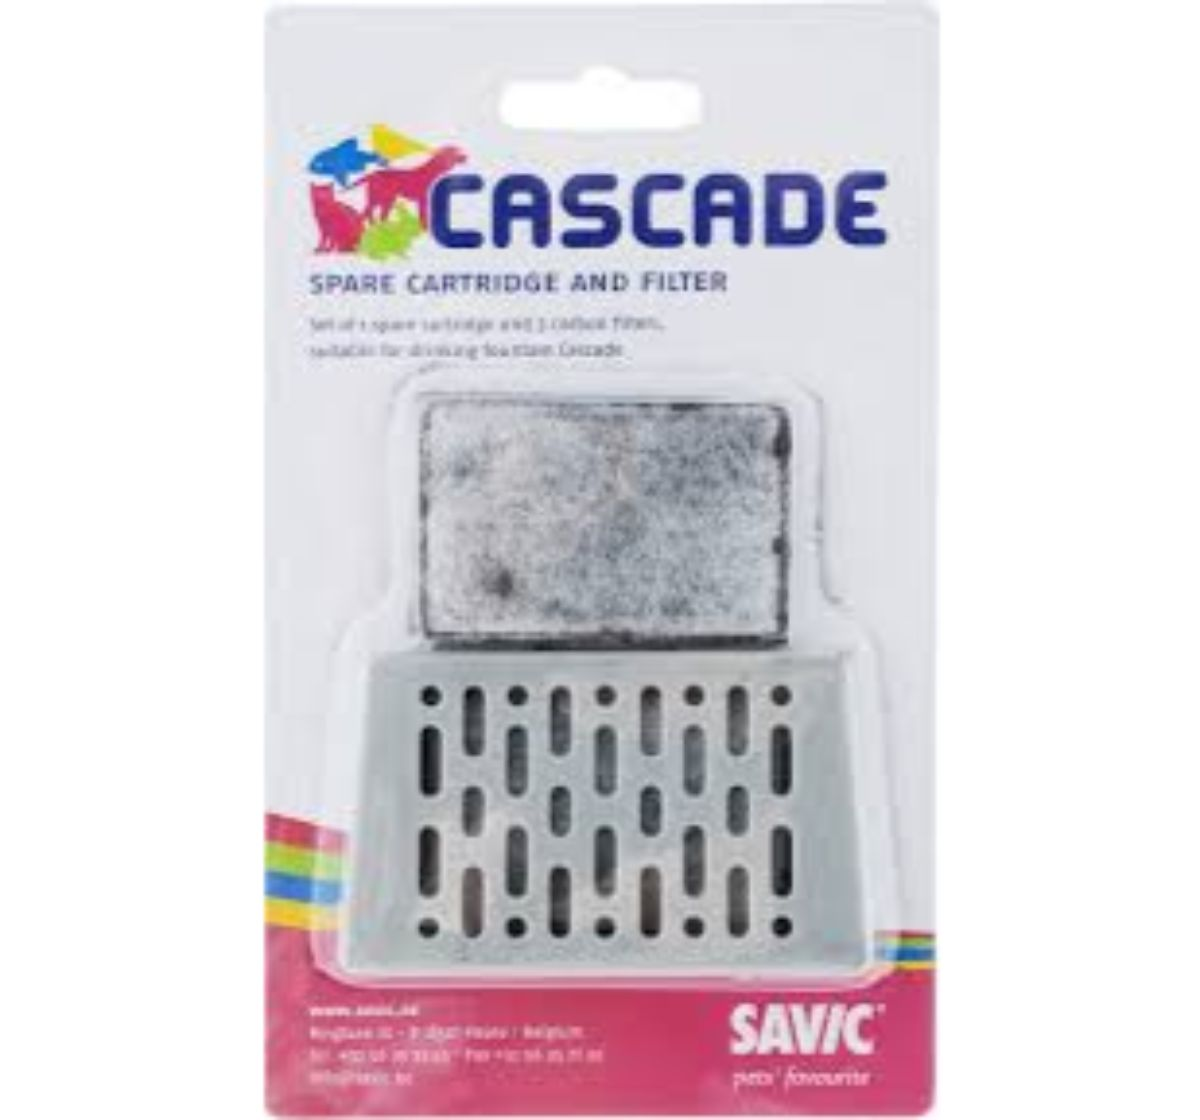 Savic Active Carbon 3 Spare filter & Cartridge for Cascade